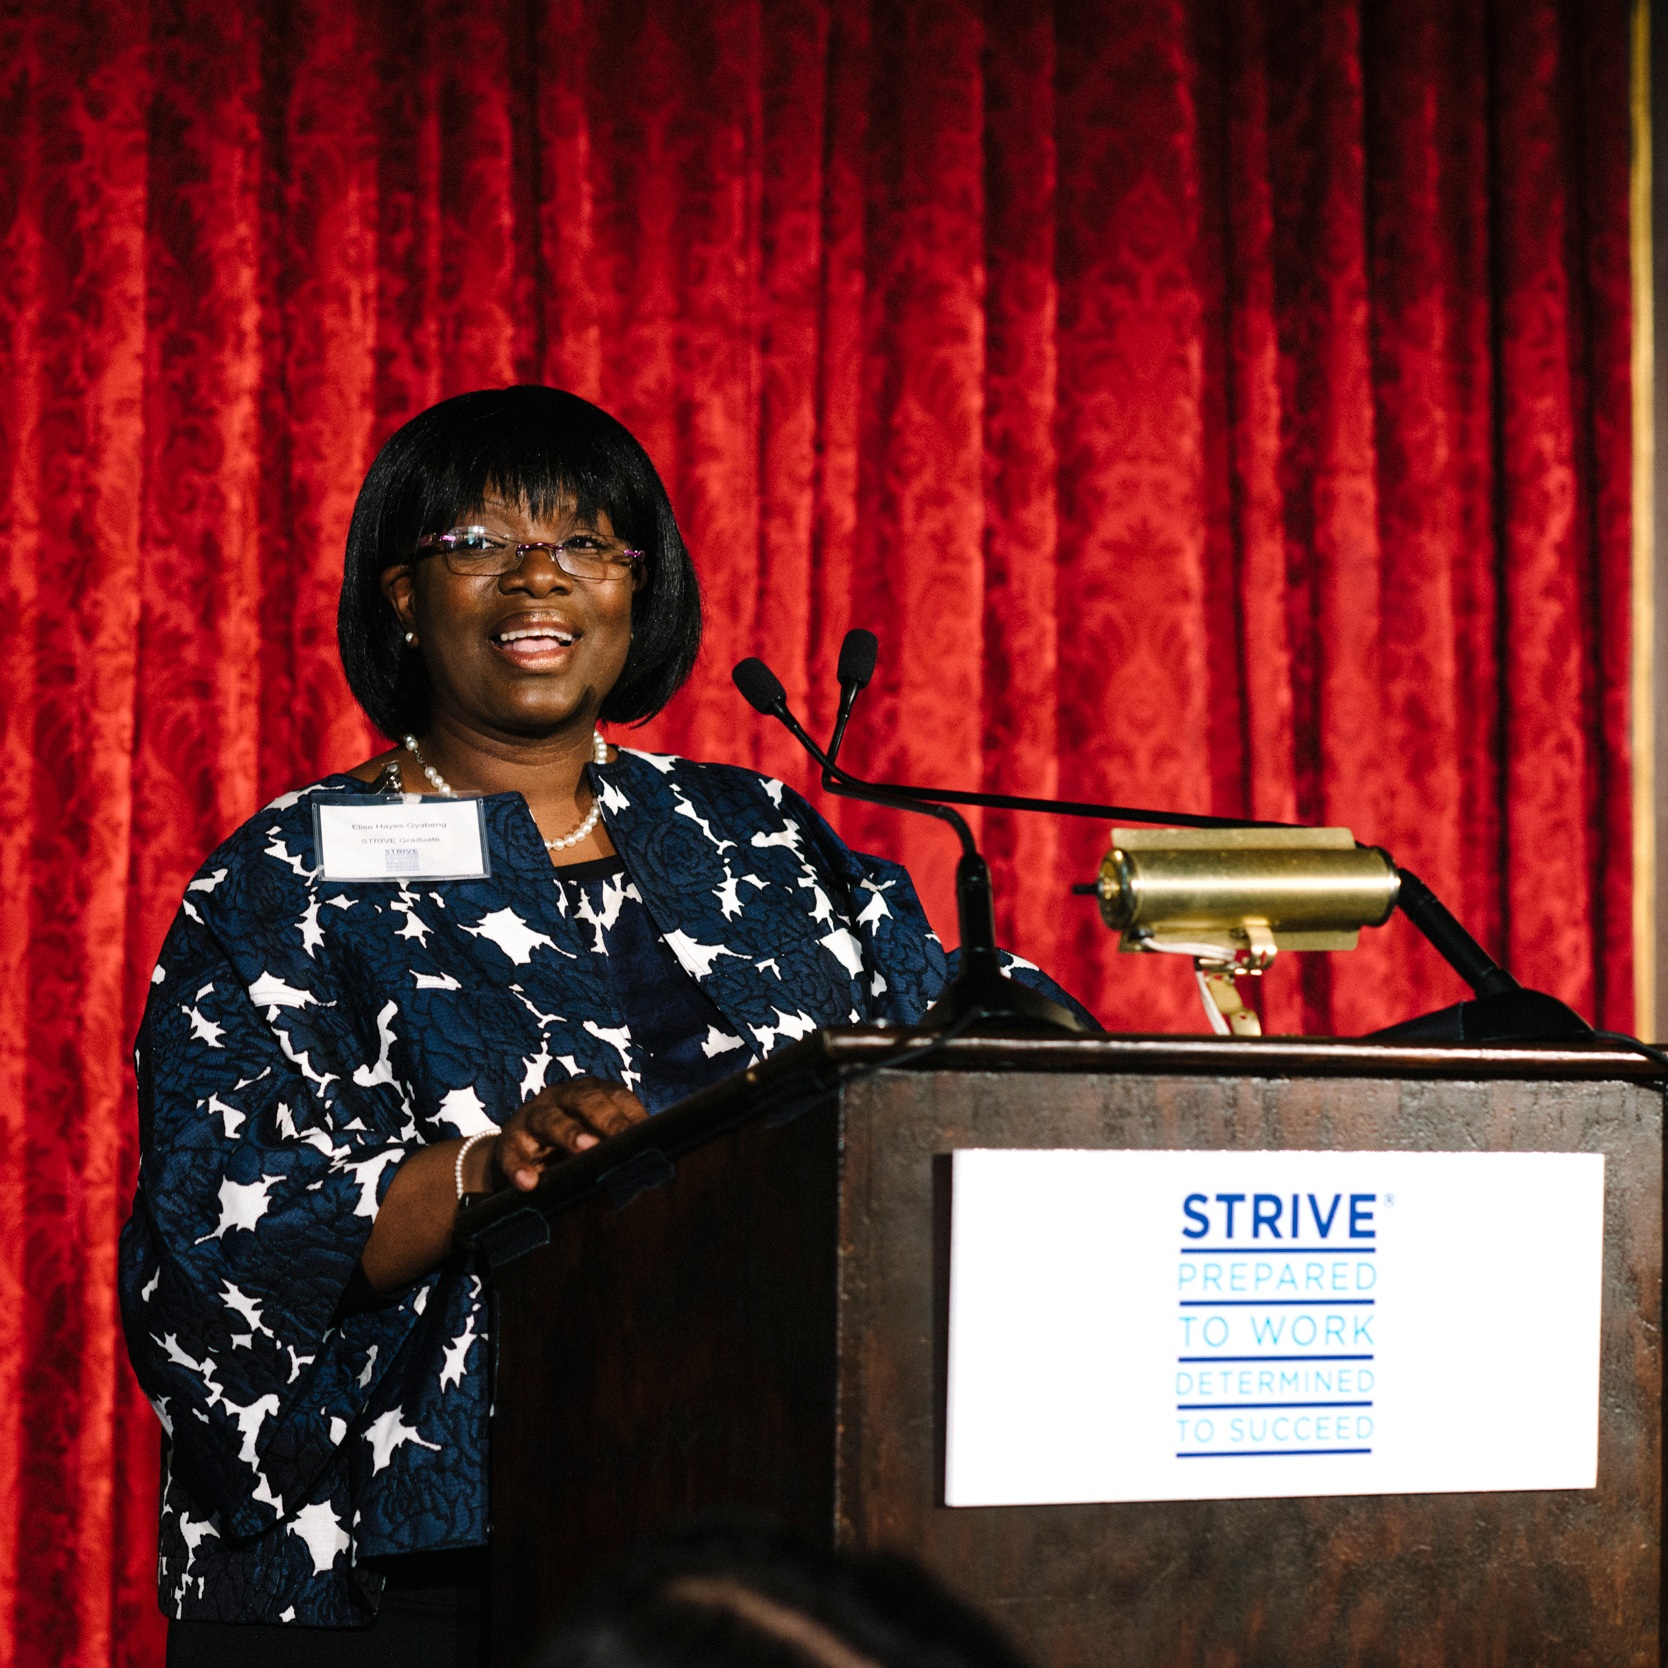 Strive_Luncheon-8.jpg